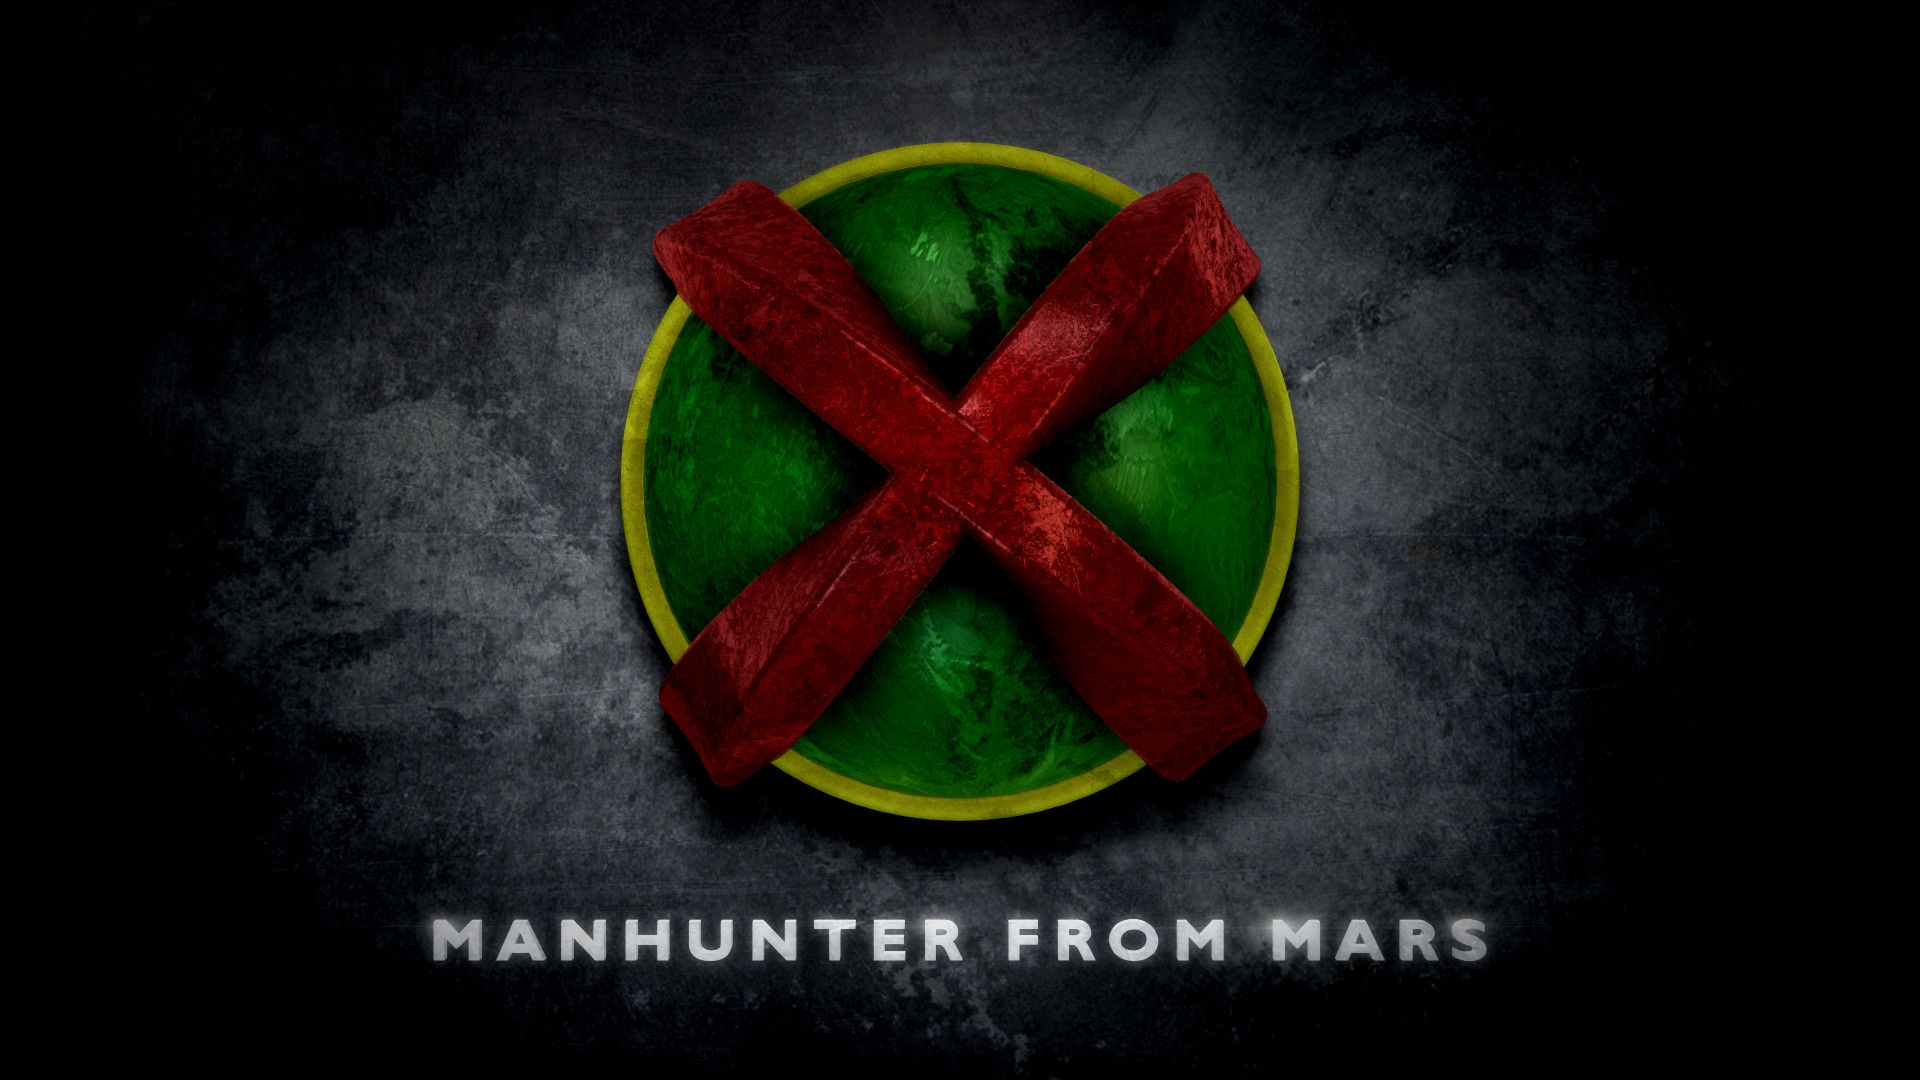 Martian Manhunter Stylized Logo Http Www Redbubble Com People Bigrockdj Collections 230014 Justice League Martian Manhunter The Martian Dc Comics Logo